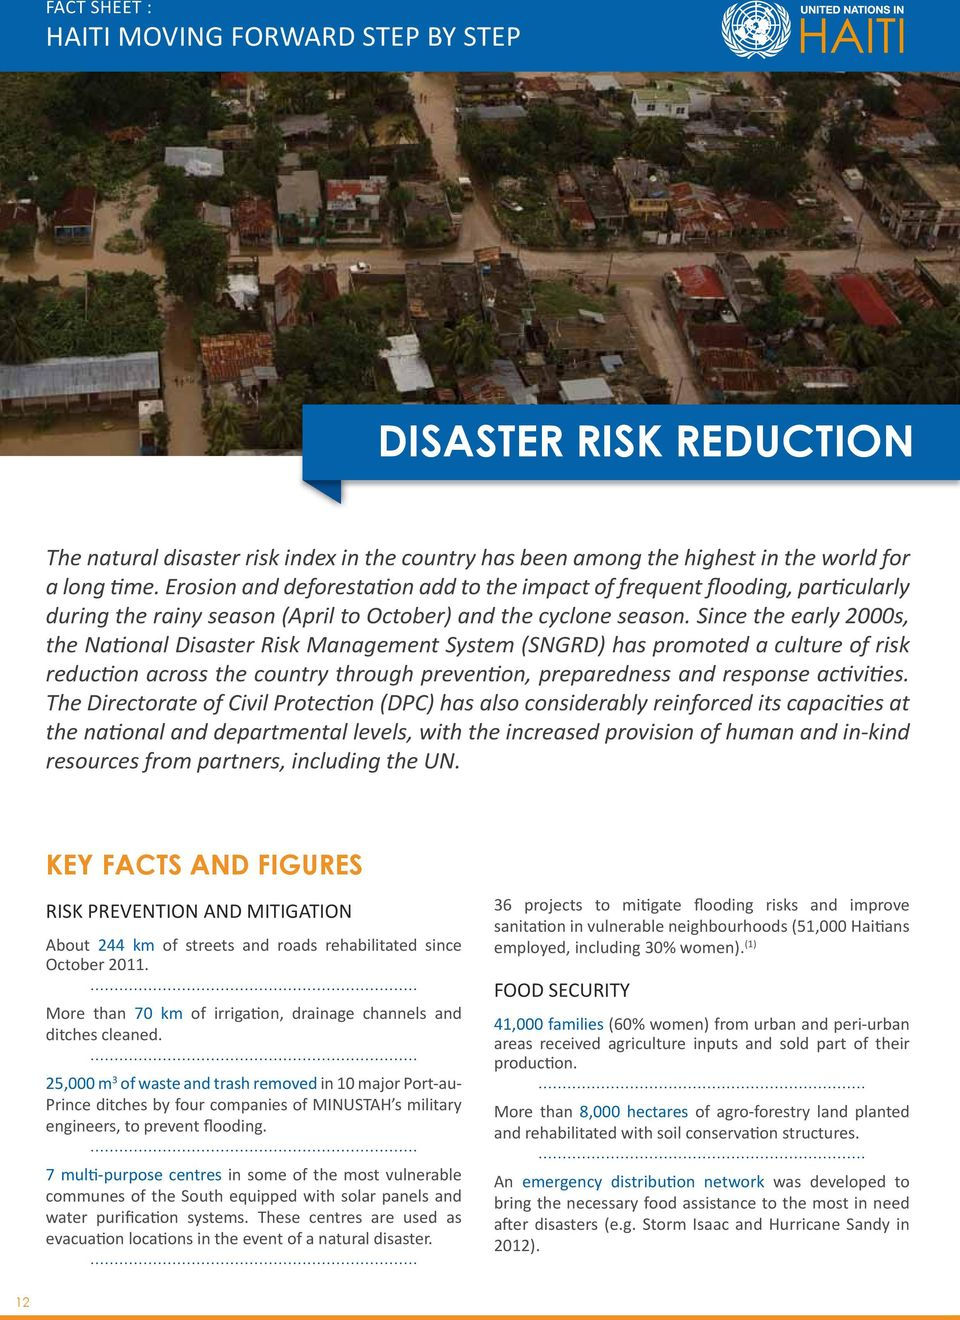 Since the early 2000s, the National Disaster Risk Management System (SNGRD) has promoted a culture of risk reduction across the country through prevention, preparedness and response activities.